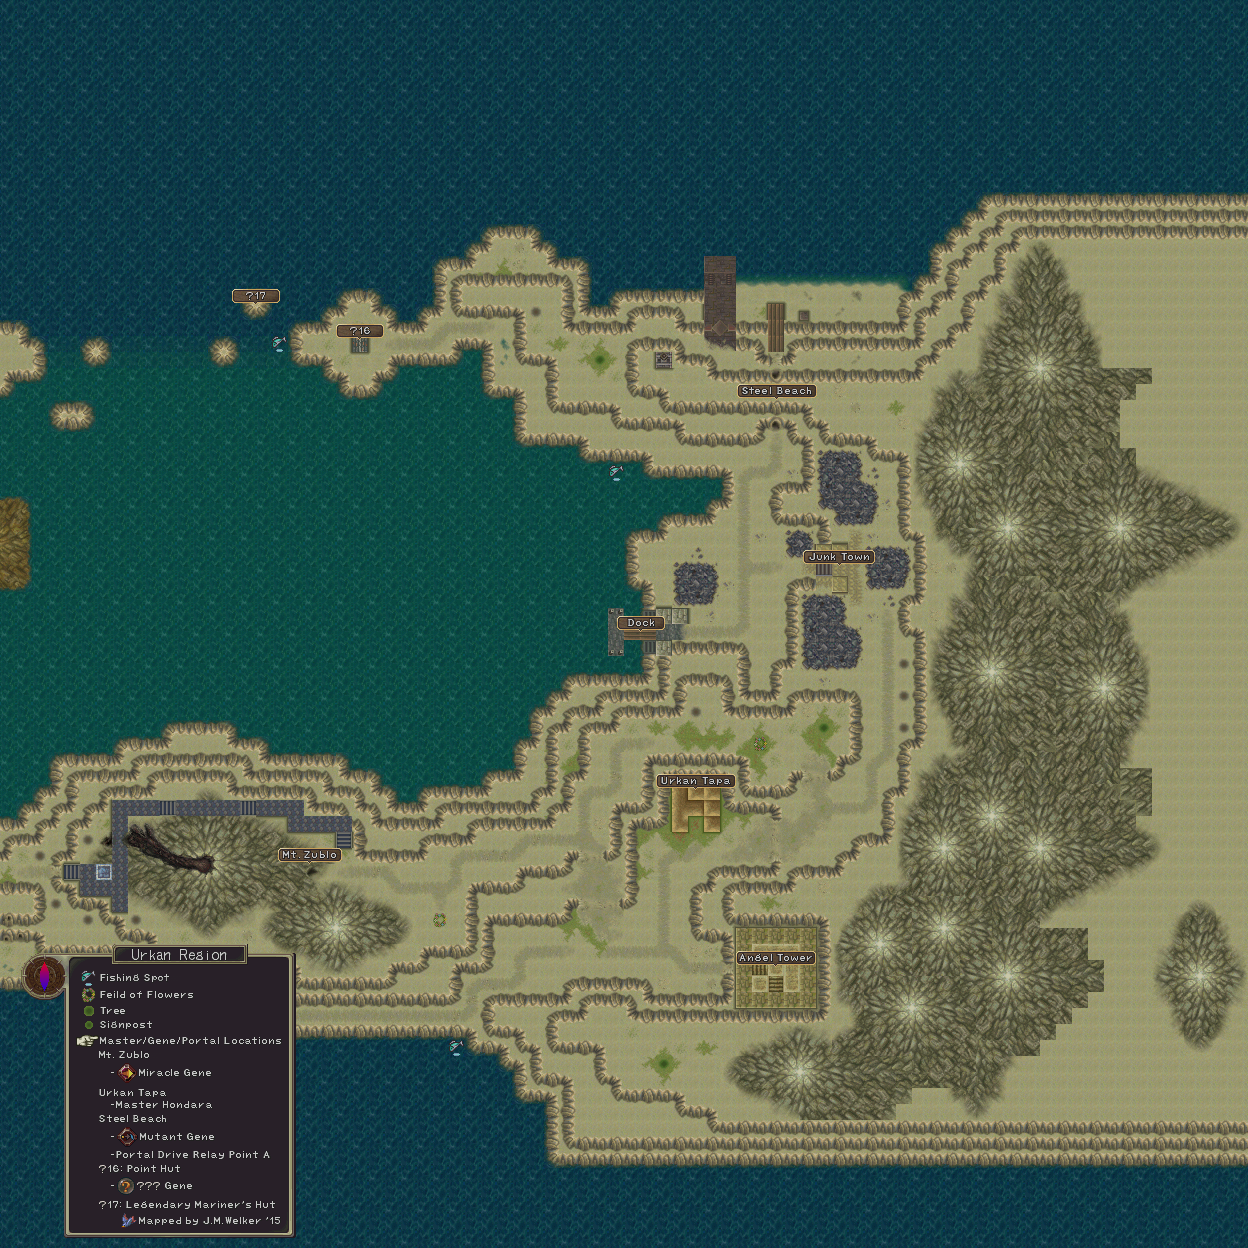 Urkan Region | Breath of Fire | FANDOM powered by Wikia on resident evil zero map, tales of symphonia map, god of war map, skies of arcadia map, devil may cry map, legend of dragoon map, pool of radiance map, illusion of gaia map, shining force map, chrono trigger map, chrono cross map, legacy of kain map,